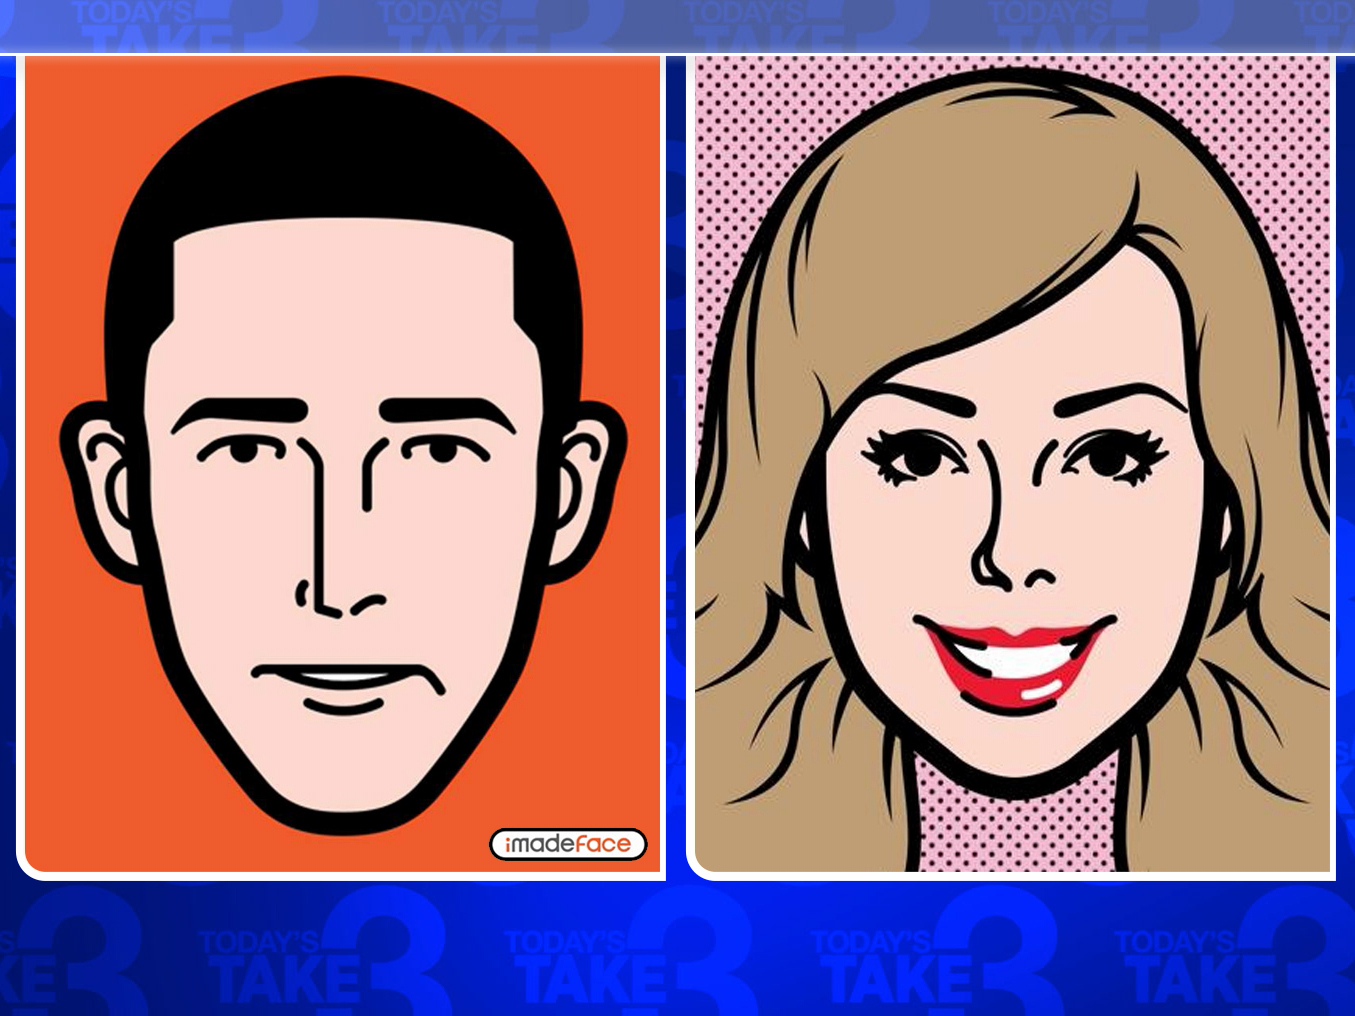 today anchors imade face cartoon portraits